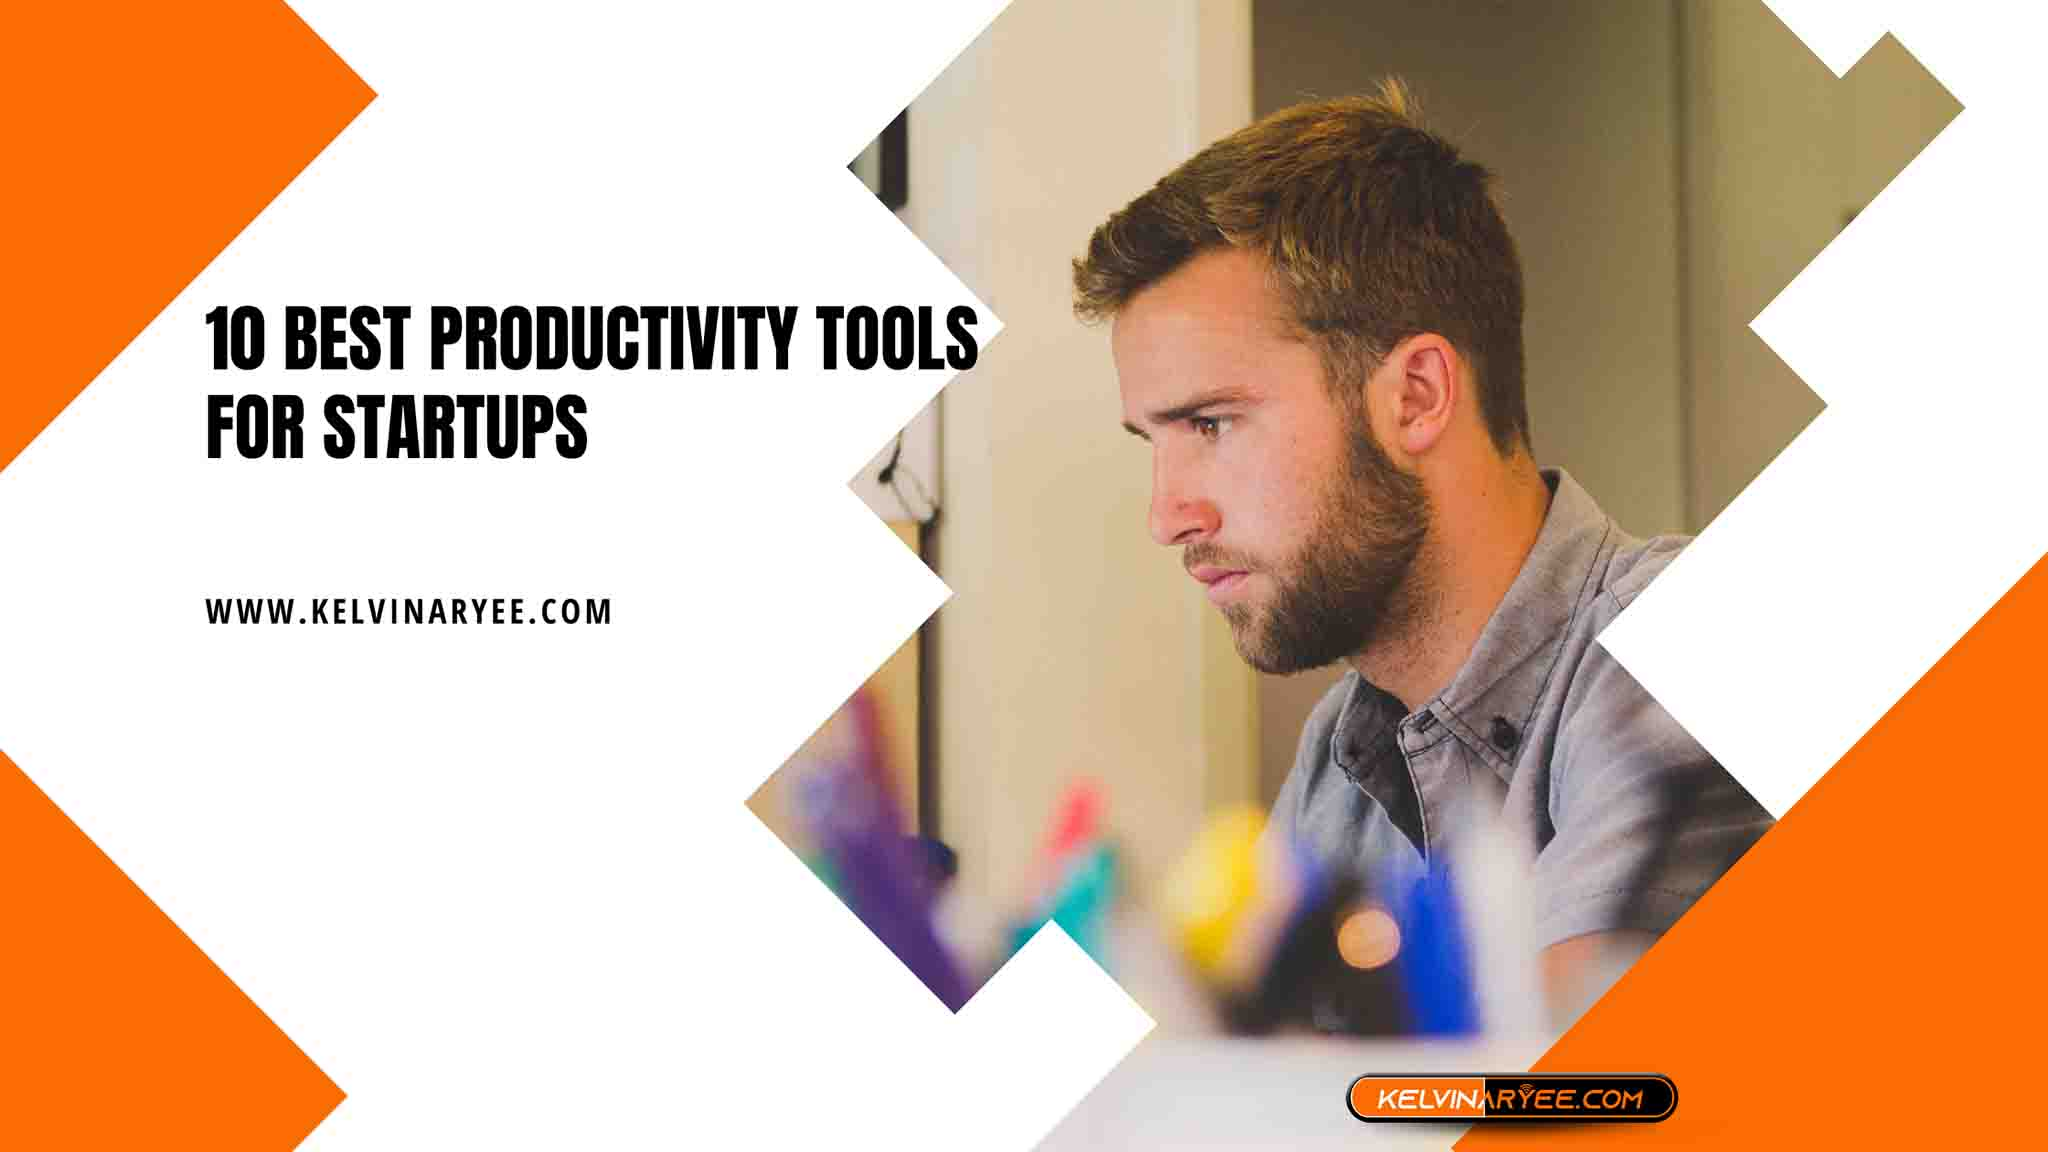 10 Best Productivity Tools for Startups